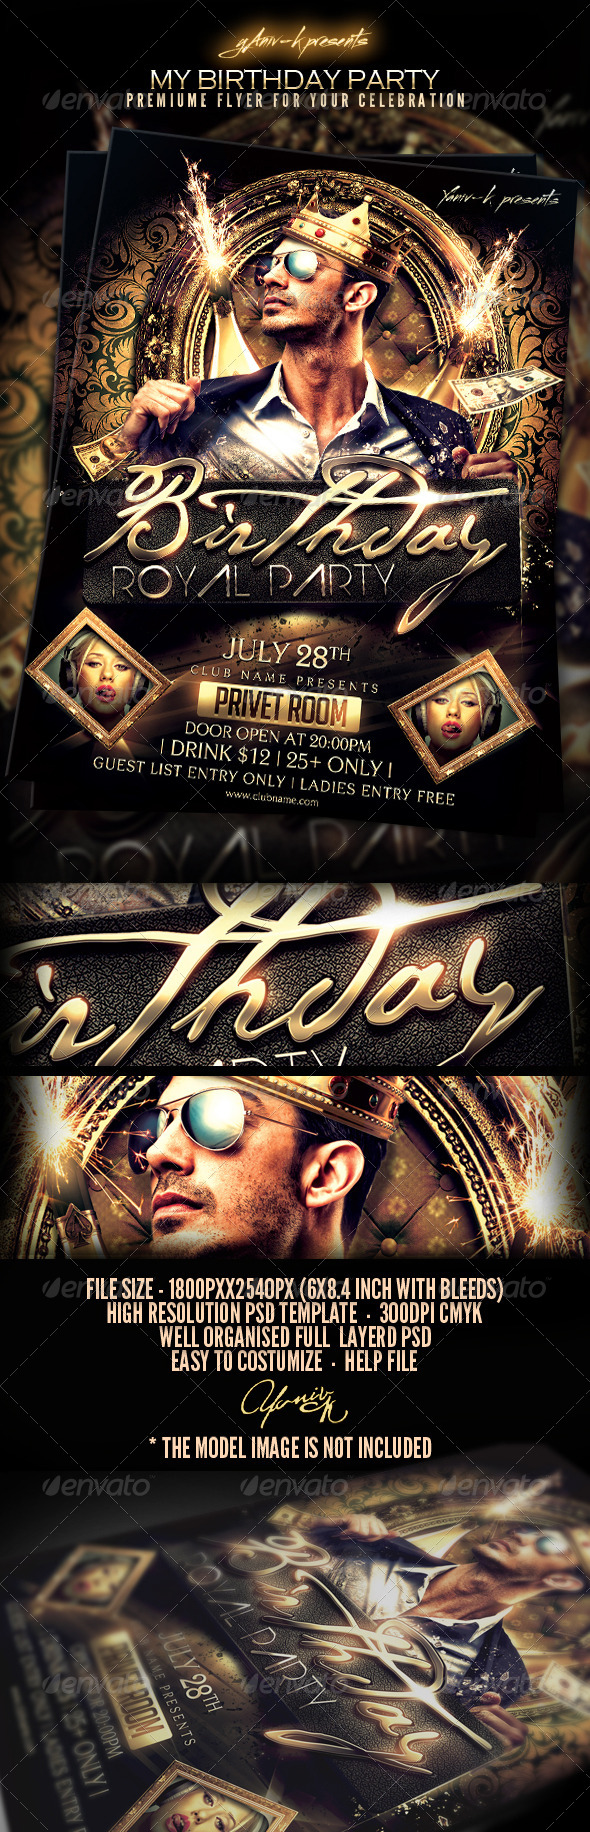 GraphicRiver My Birthday Bachelor Party Invitation 6347325